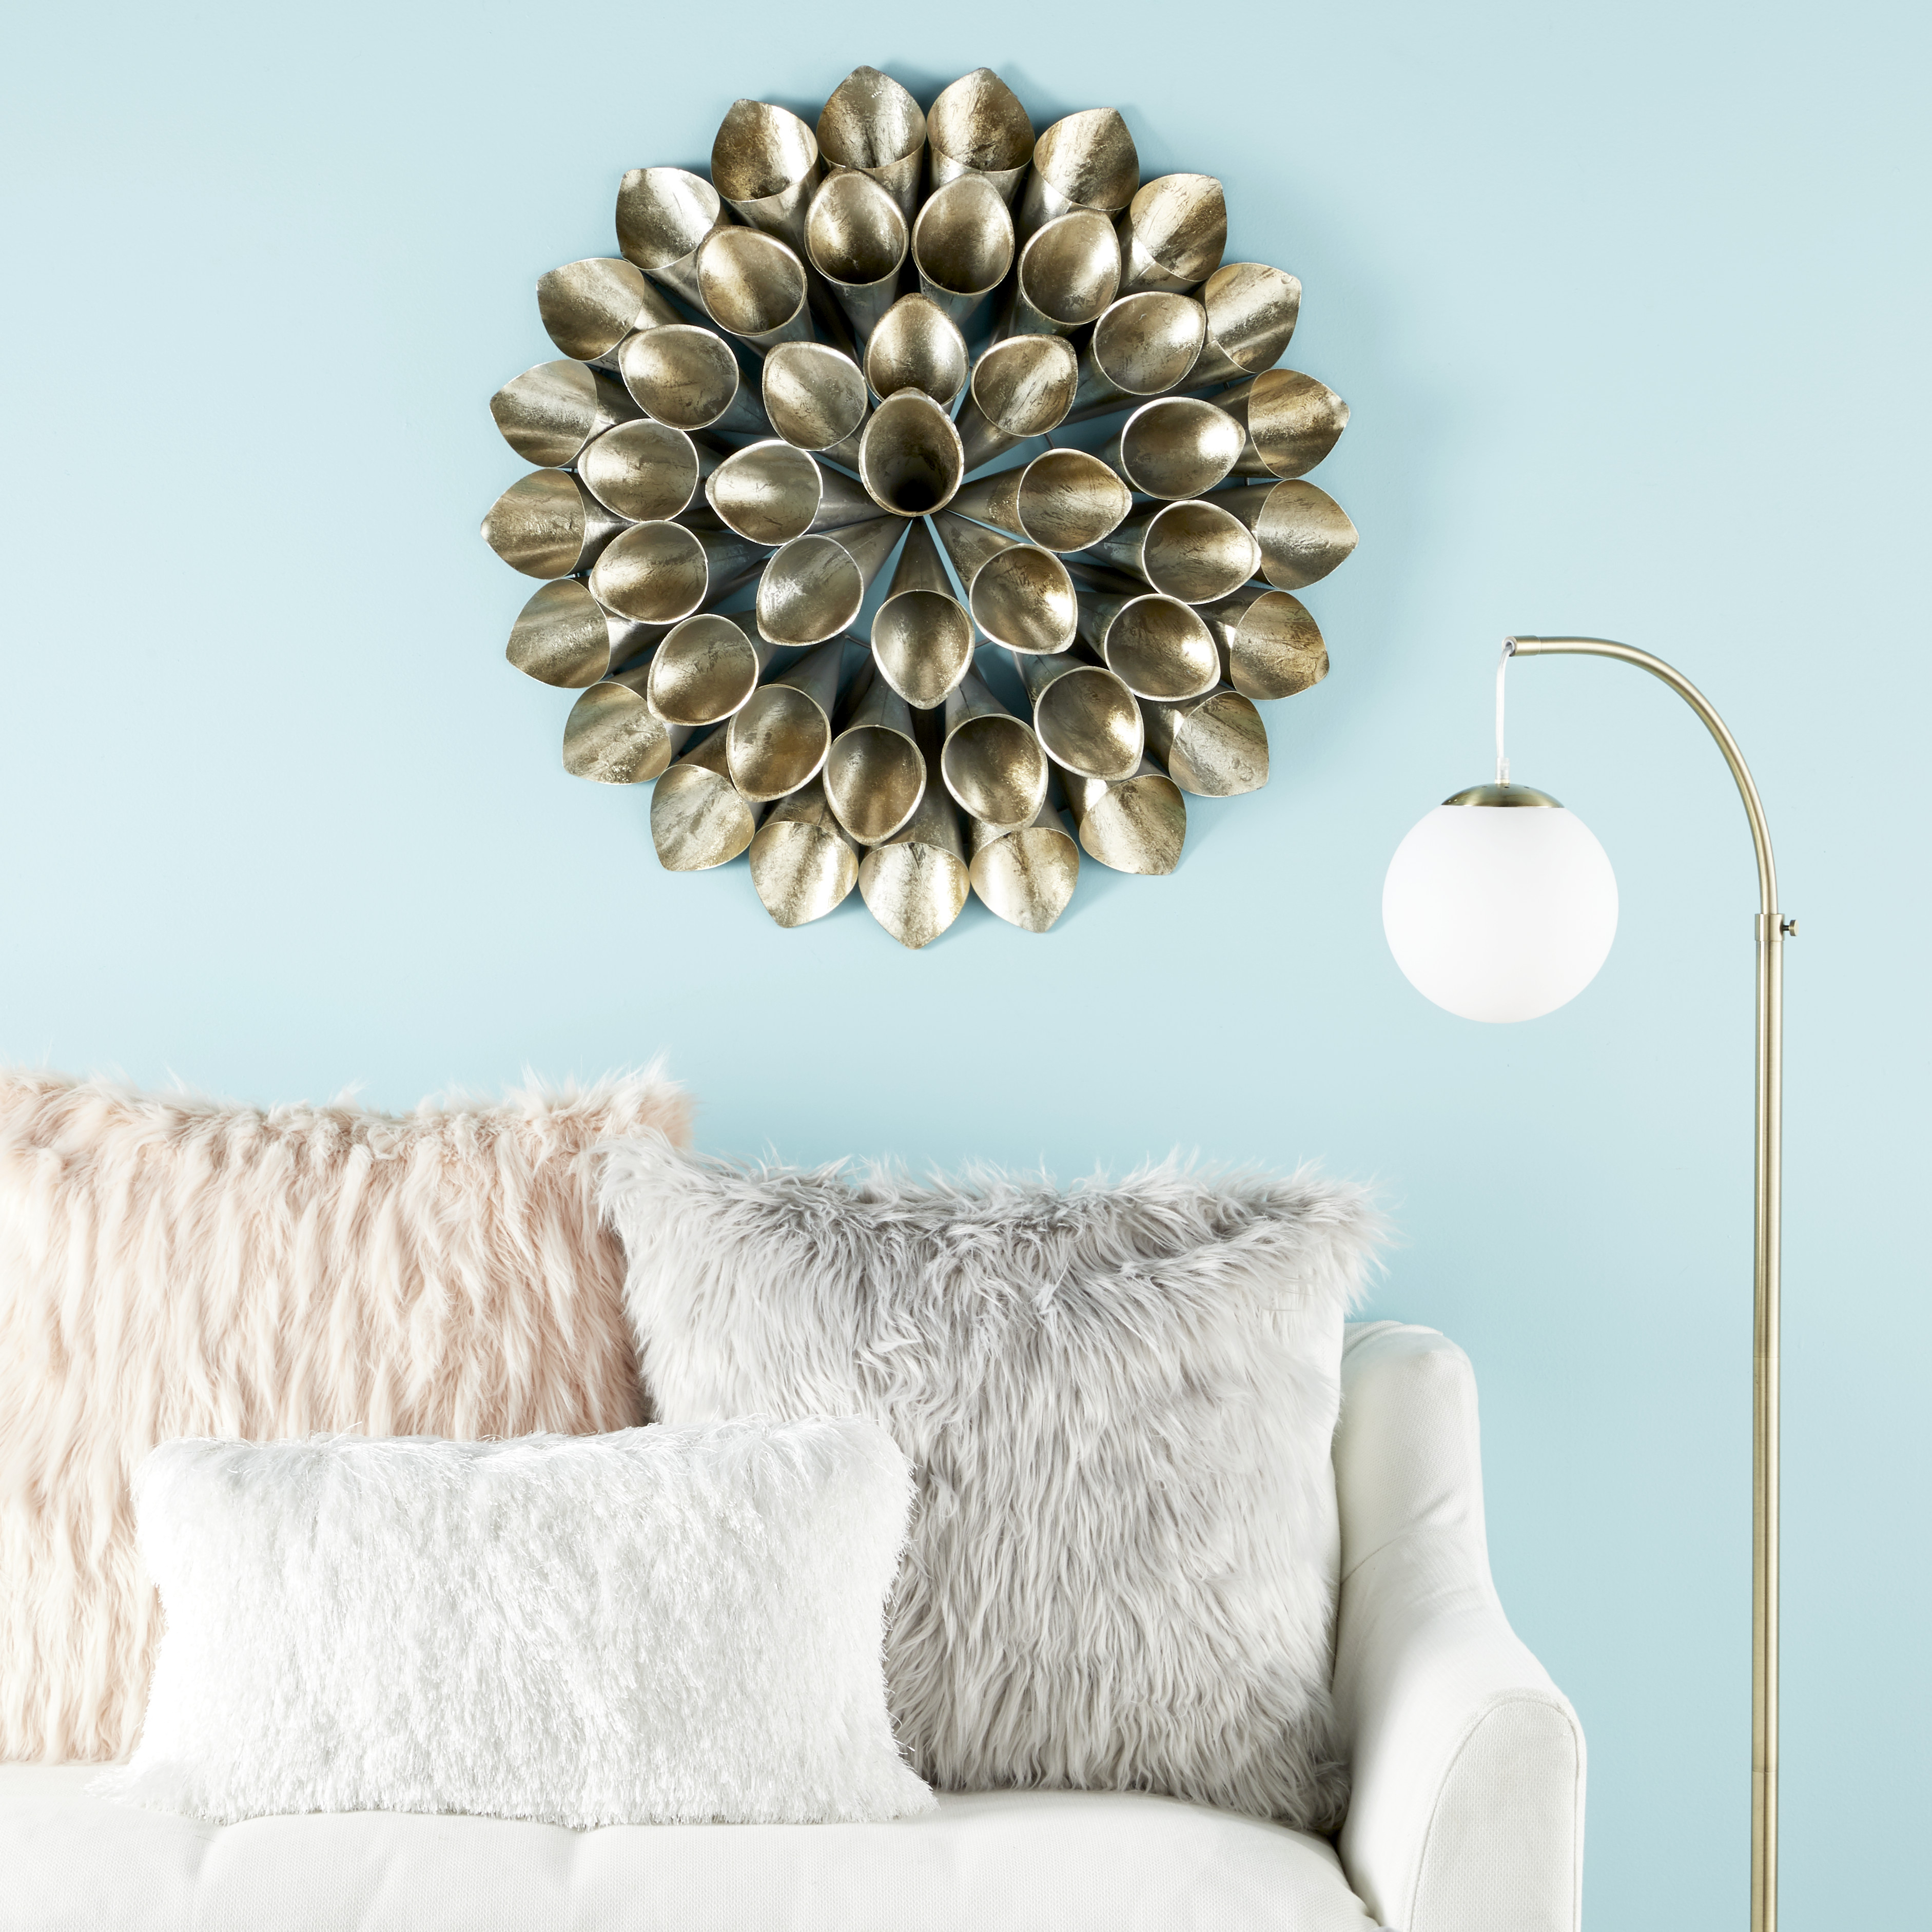 Cosmoliving Large Round Metallic Gold Metal Floral Orb Wall Decor Throughout Well Known Metal Wall Decor By Cosmoliving (Gallery 8 of 20)